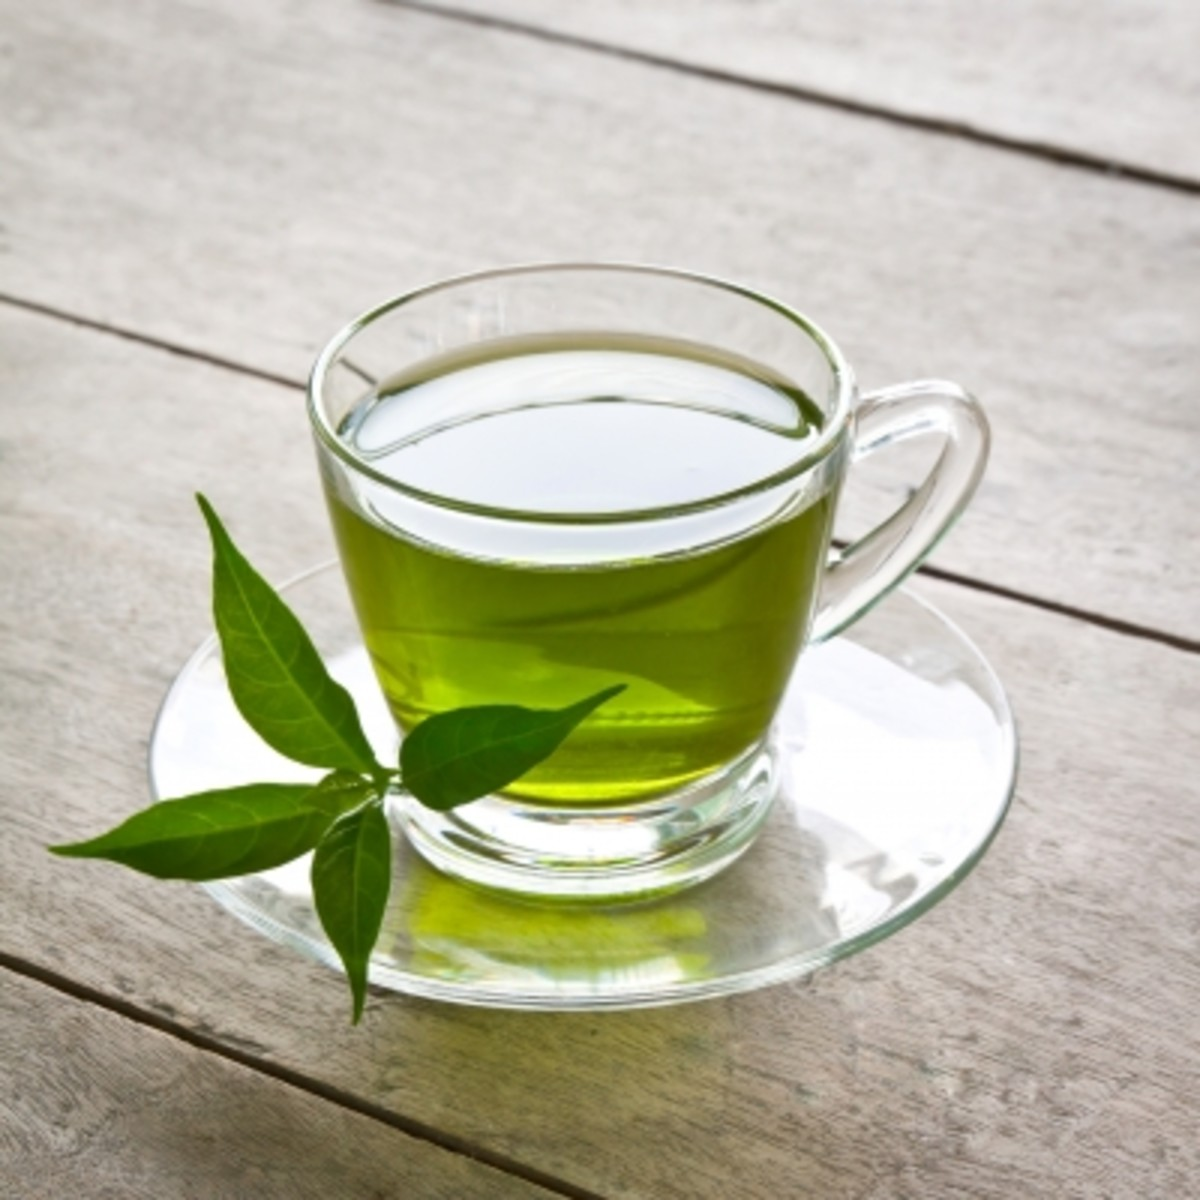 The Top 5 Health Benefits of Green Tea